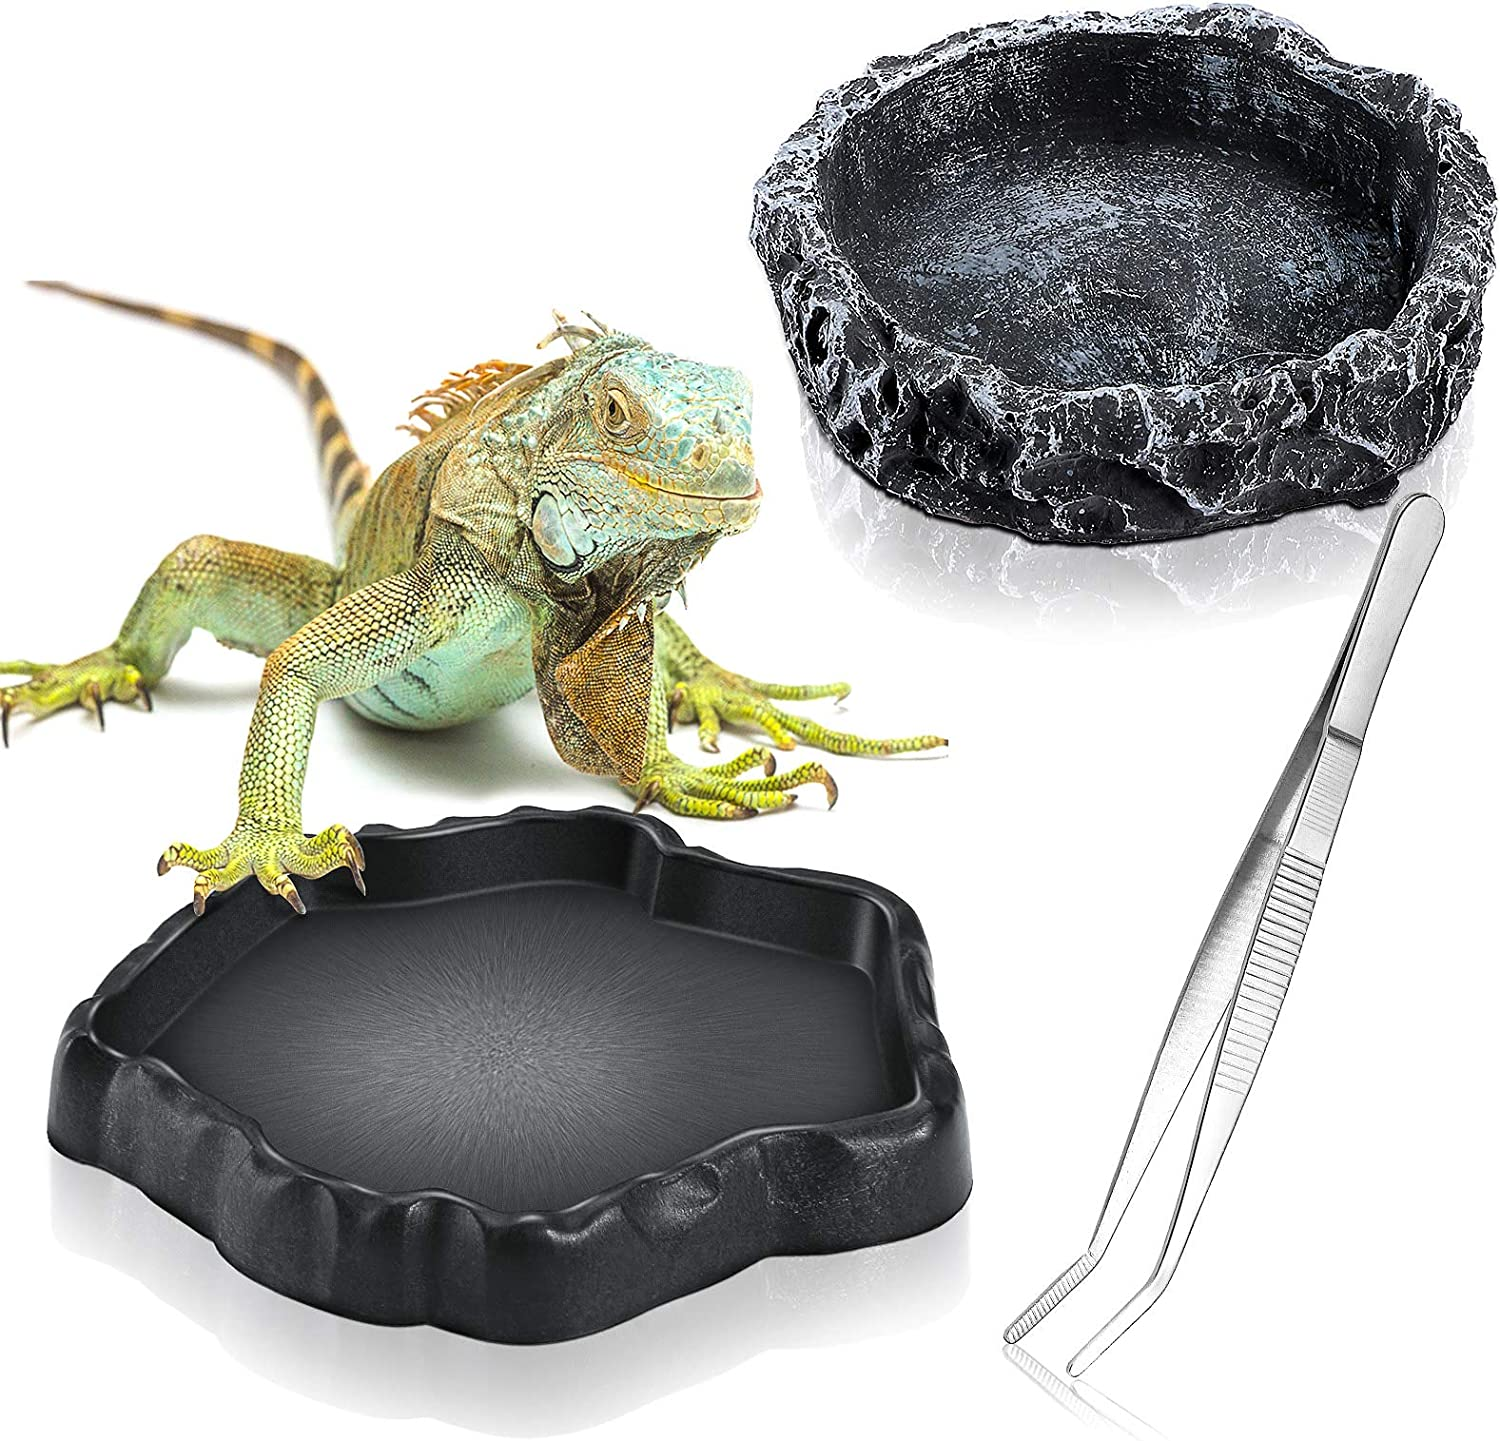 3 Pieces Reptile Water Dish Food Bowl Set Includes 2 Resin Reptile Rock Bowl Food Feeder Bowl Water Bowl 1 Feeding Tweezer Tong Reptile Rock Feeder for Pet Tortoise Lizard Frog Gecko Snake Chameleon